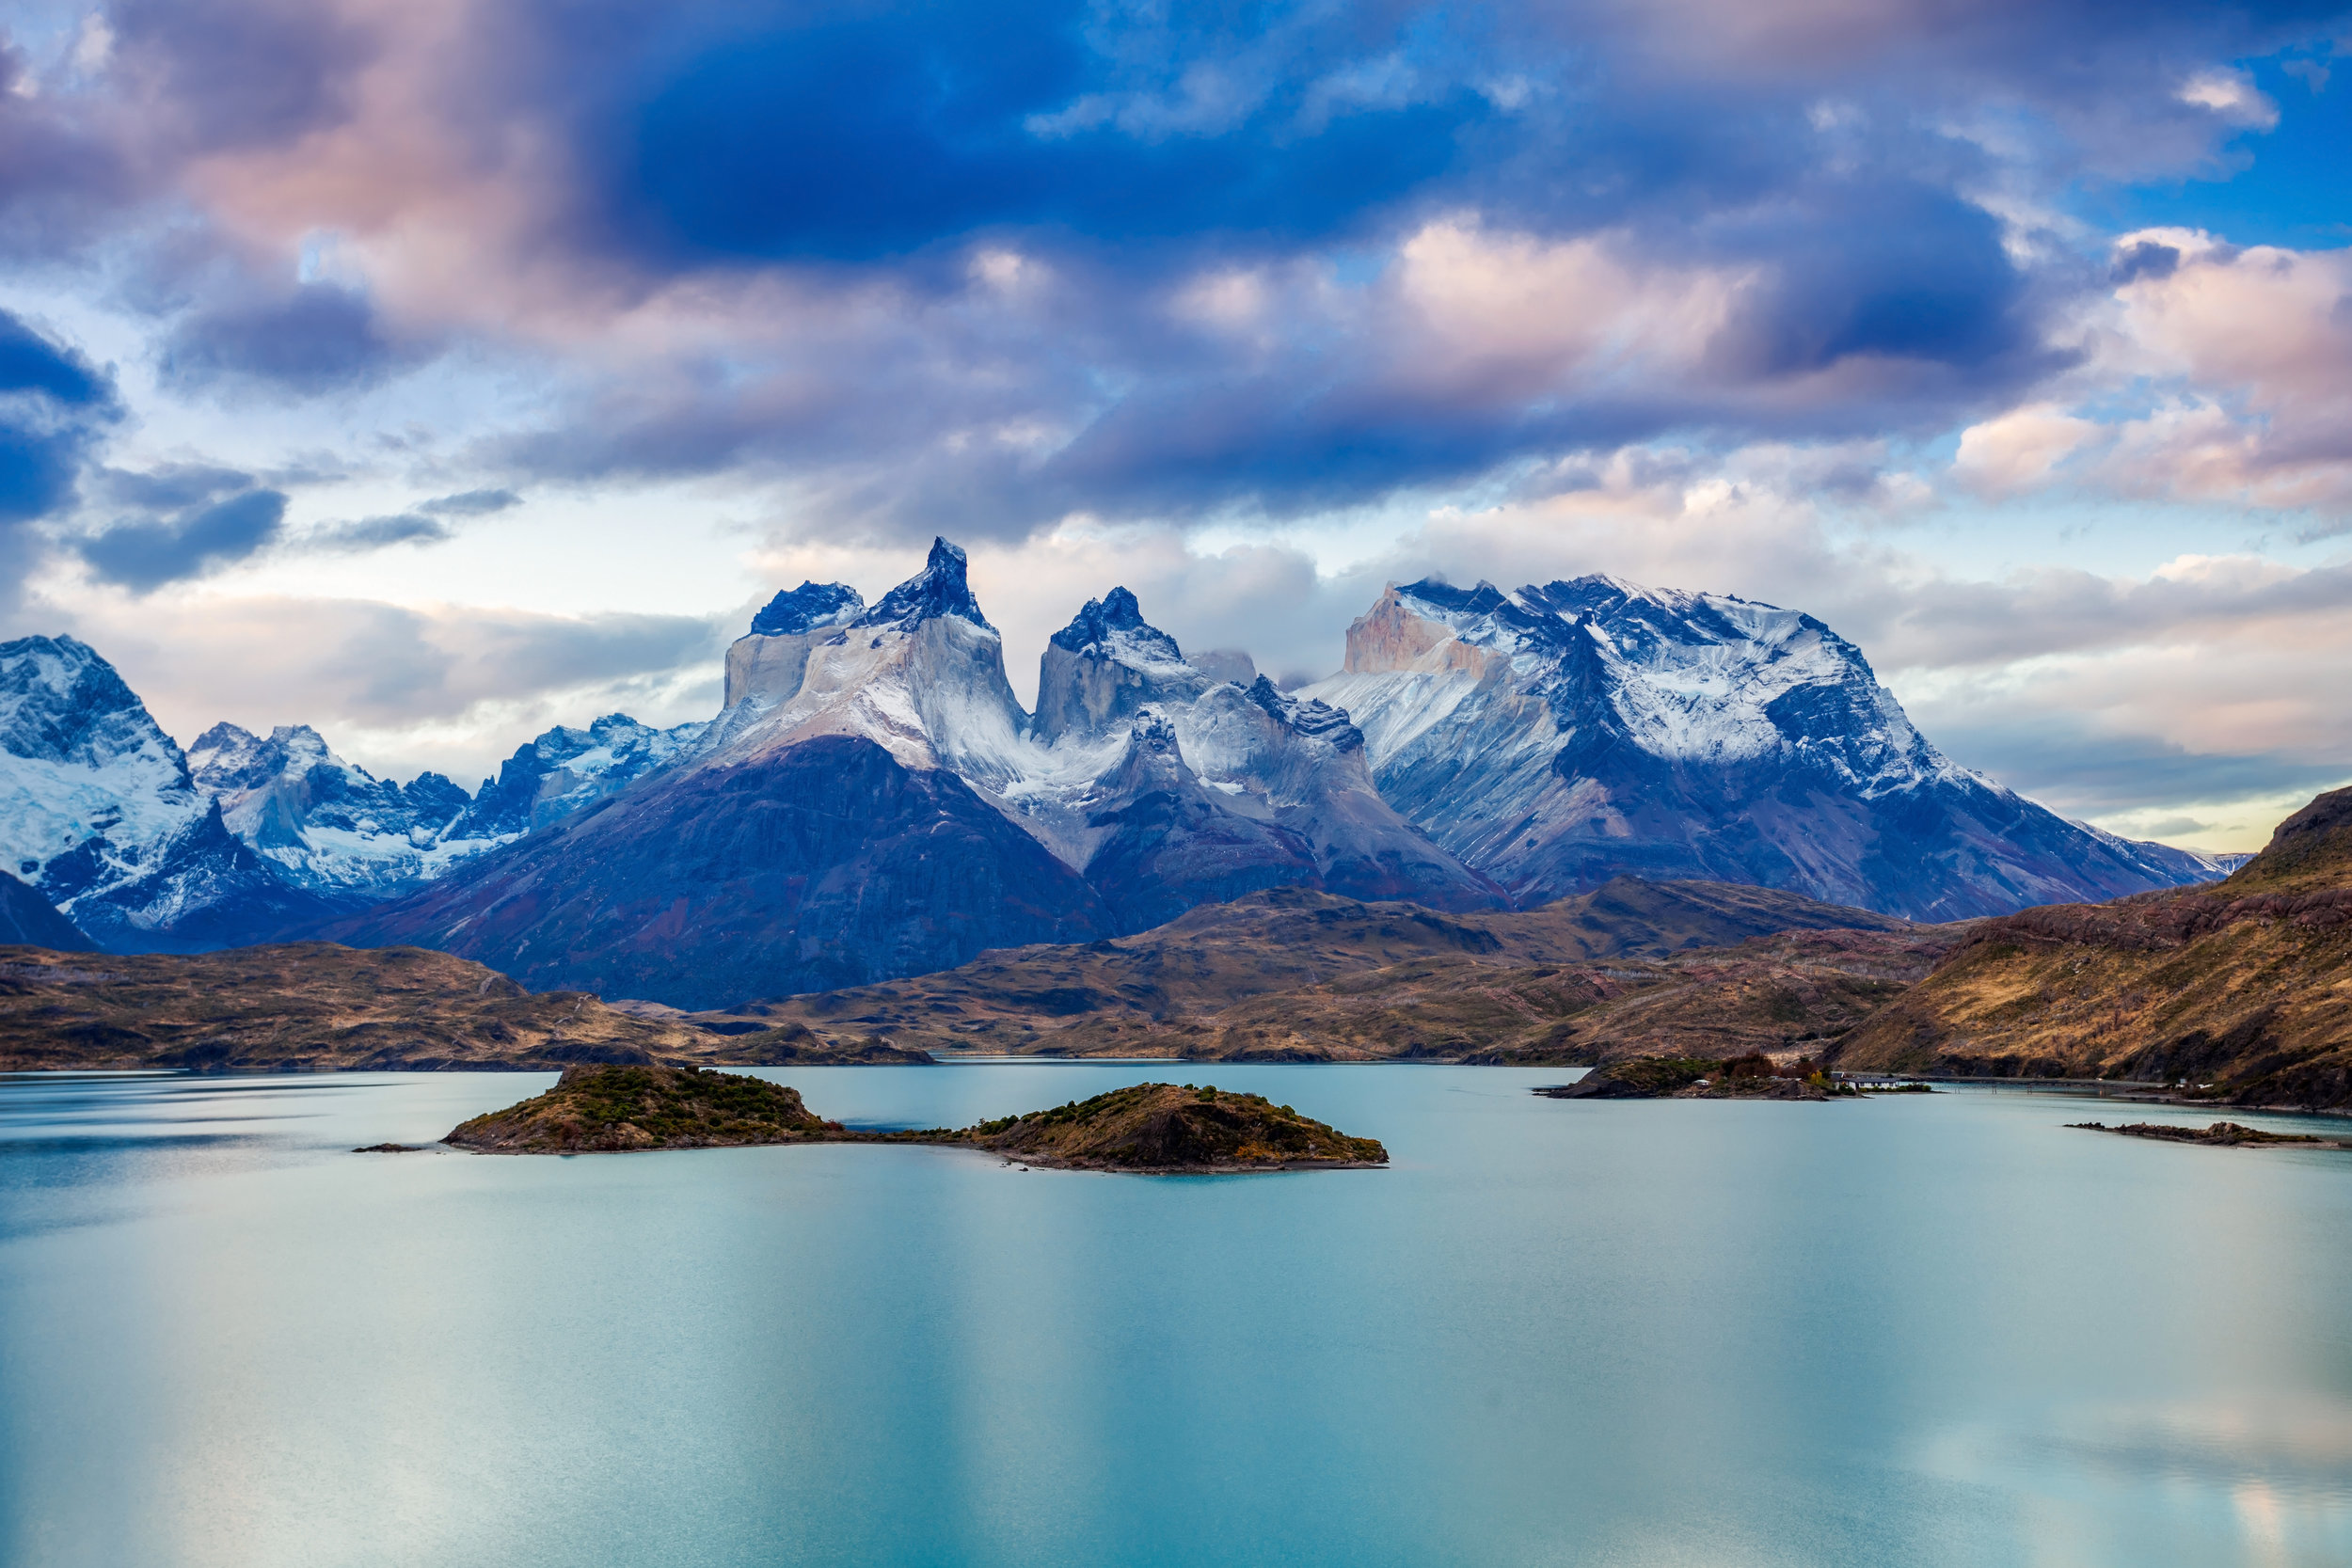 Patagonia is the world's ultimate frontier. A remote wilderness, this area is home to wind-swept plains, twisting forests, granite spires, massive glaciers & incredible wildlife.Torres del Paine National Park is Patagonia's crown jewel. With an incredibly varied landscape that revolves around its famous 8200 ft mountain pillars, this area is rich for exploration and you will find a myriad of forests, lakes, plains, rivers and ice fields to relish in. -